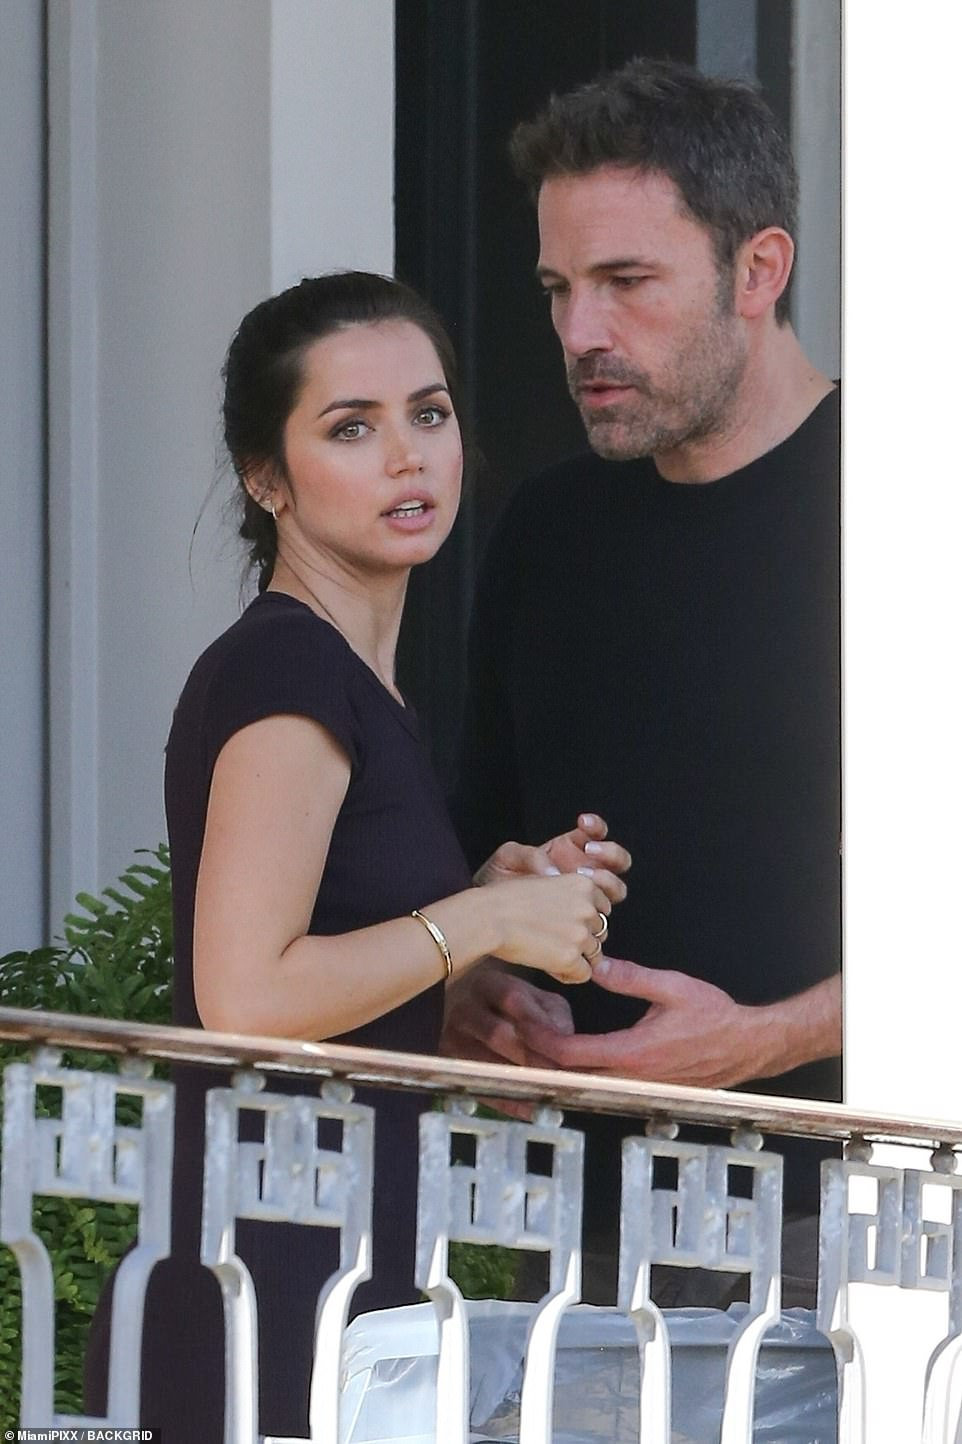 Bling: She flashed the massive sparkling engagement ring while chatting with Ben from the balcony of the New Orlean's set